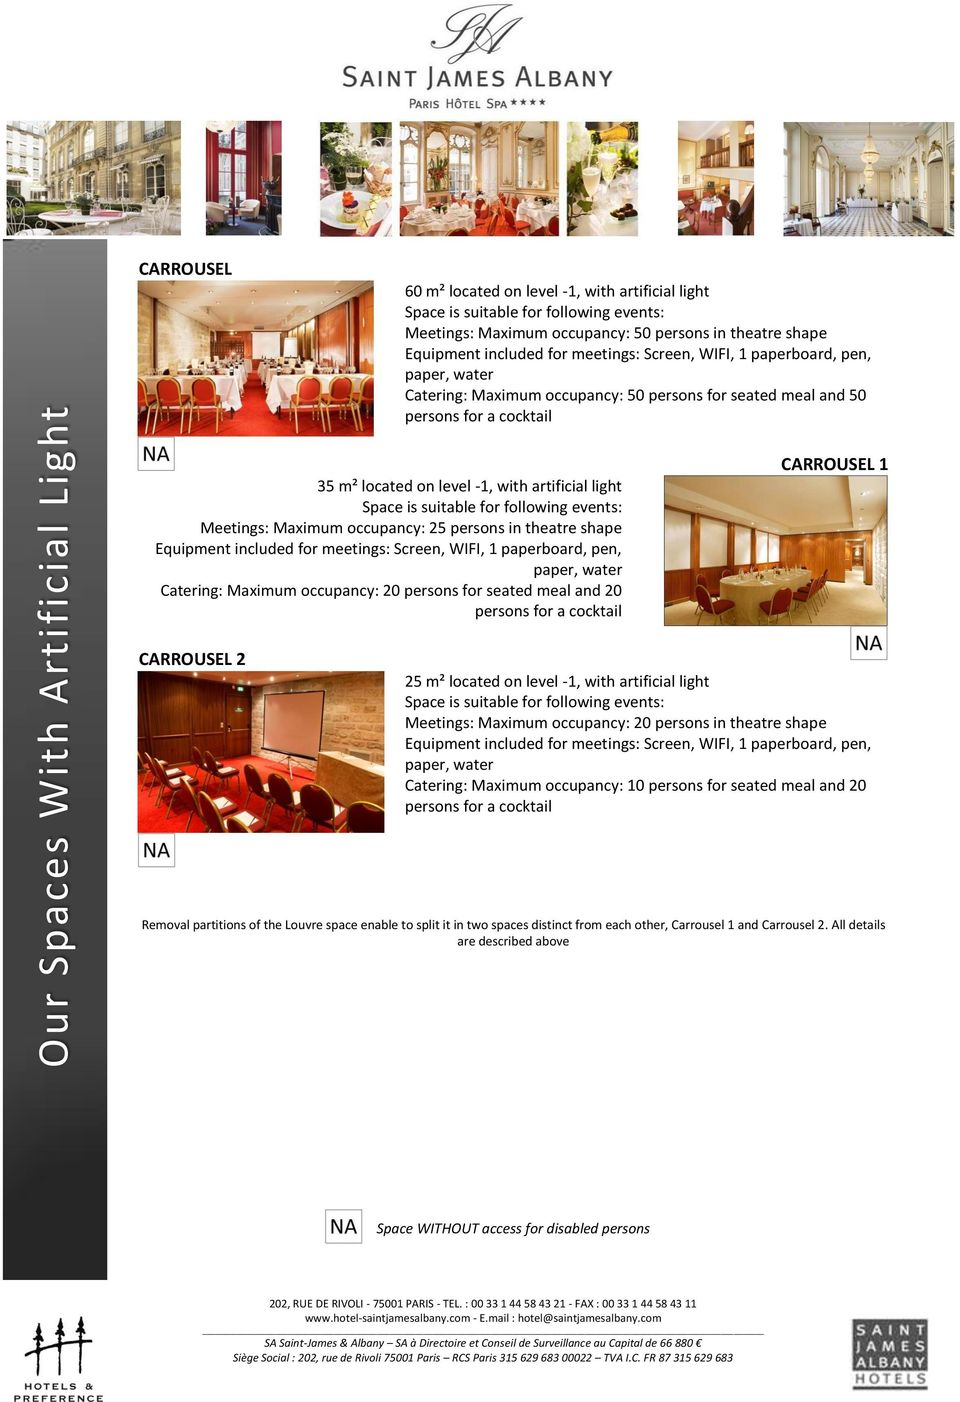 CARROUSEL 1 CARROUSEL 2 25 m² located on level -1, with artificial light Meetings: Maximum occupancy: 20 persons in theatre shape Catering: Maximum occupancy: 10 persons for seated meal and 20